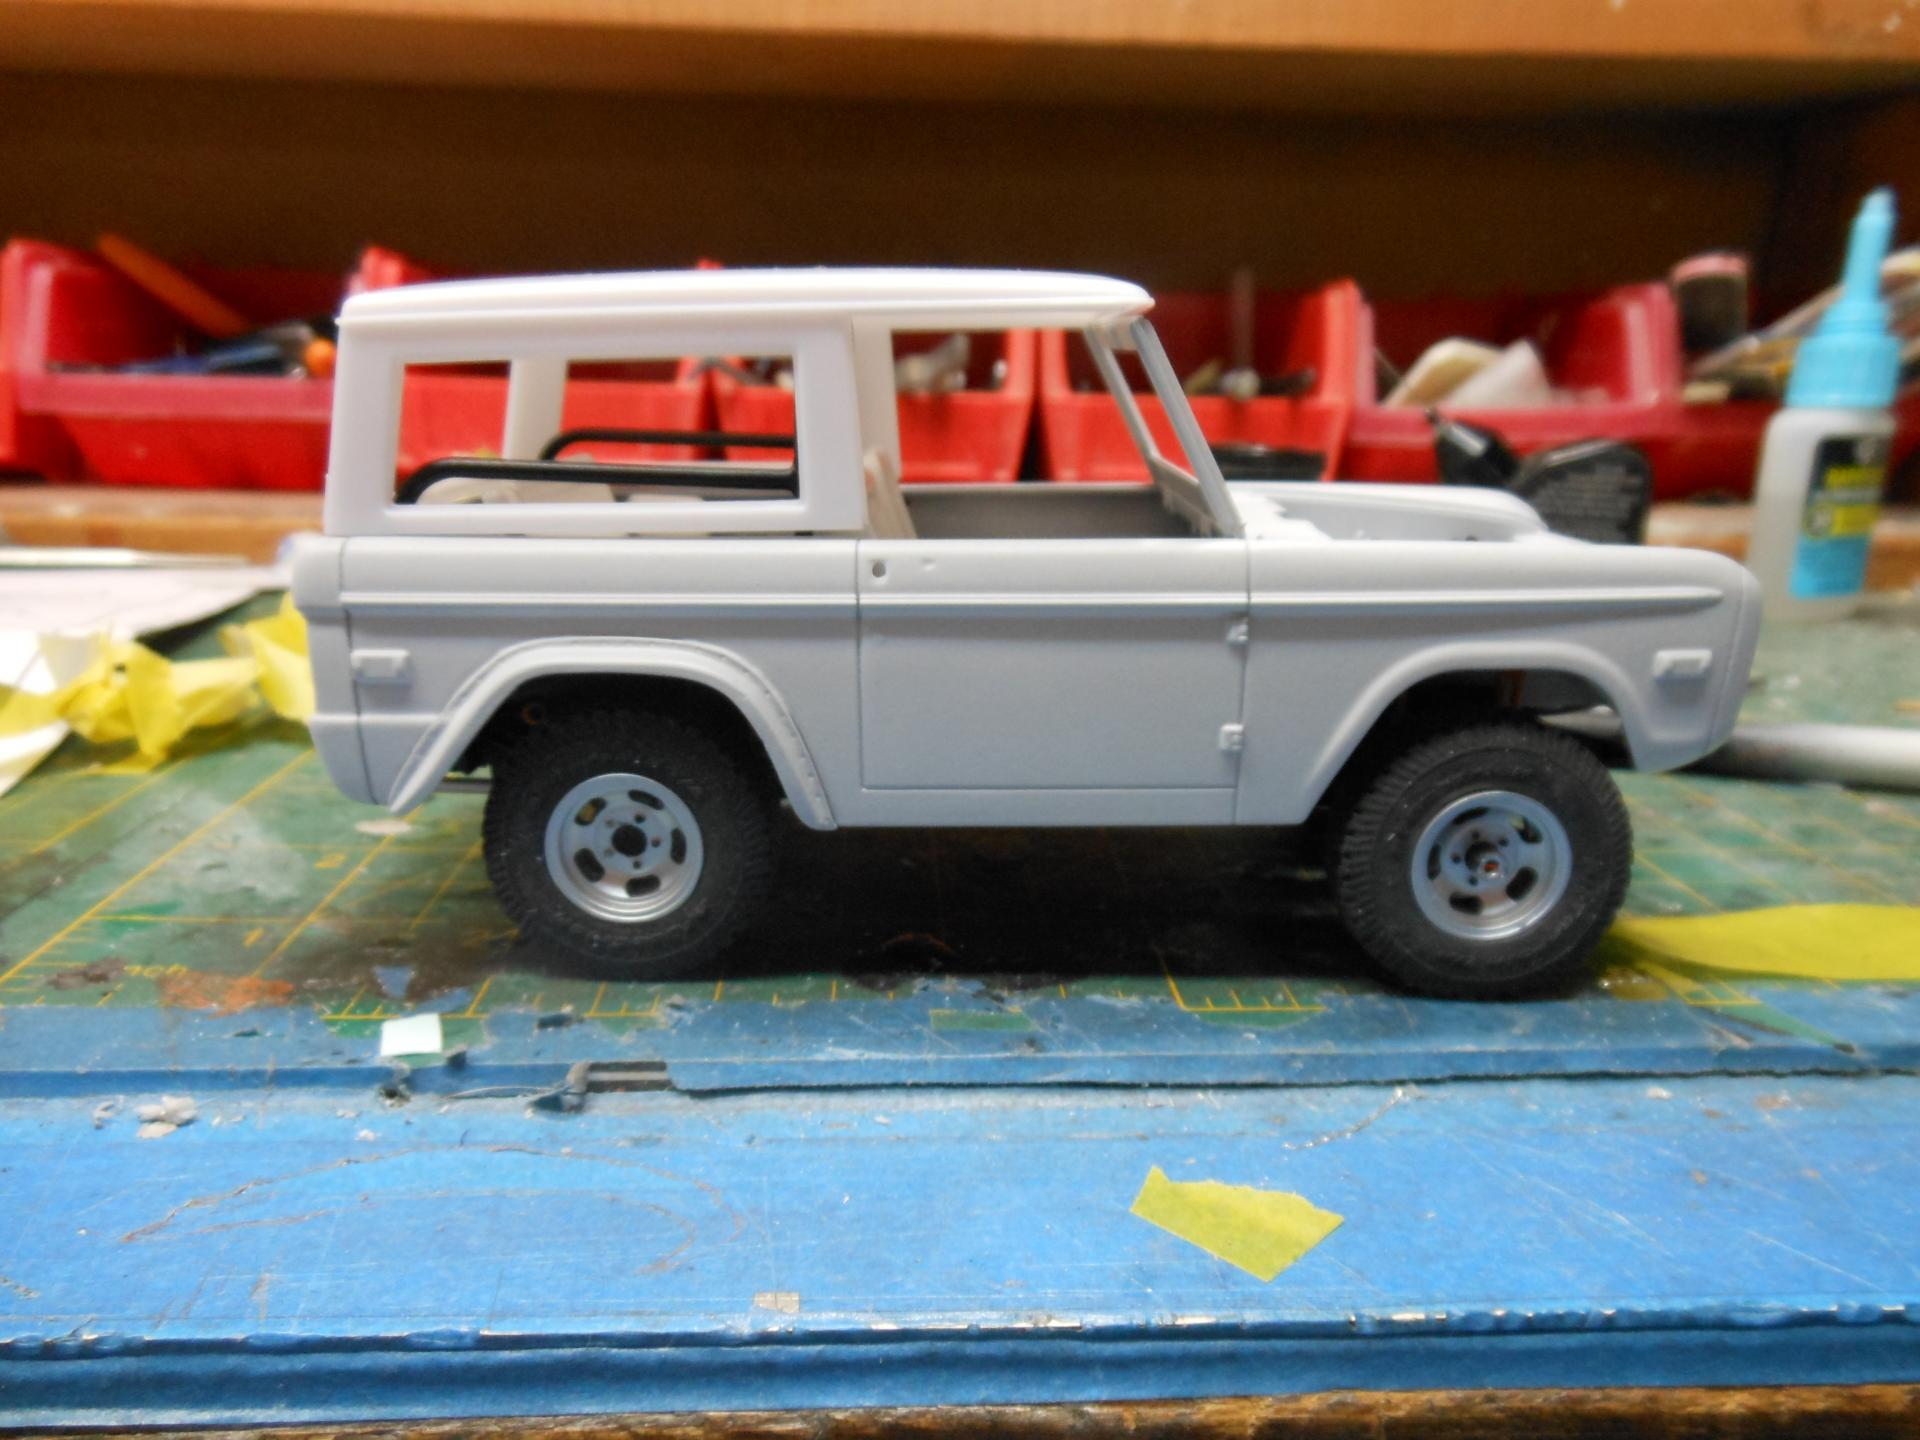 2017 Ford Bronco >> Revell Ford Bronco - On the Workbench: Pickups, Vans, SUVs ...